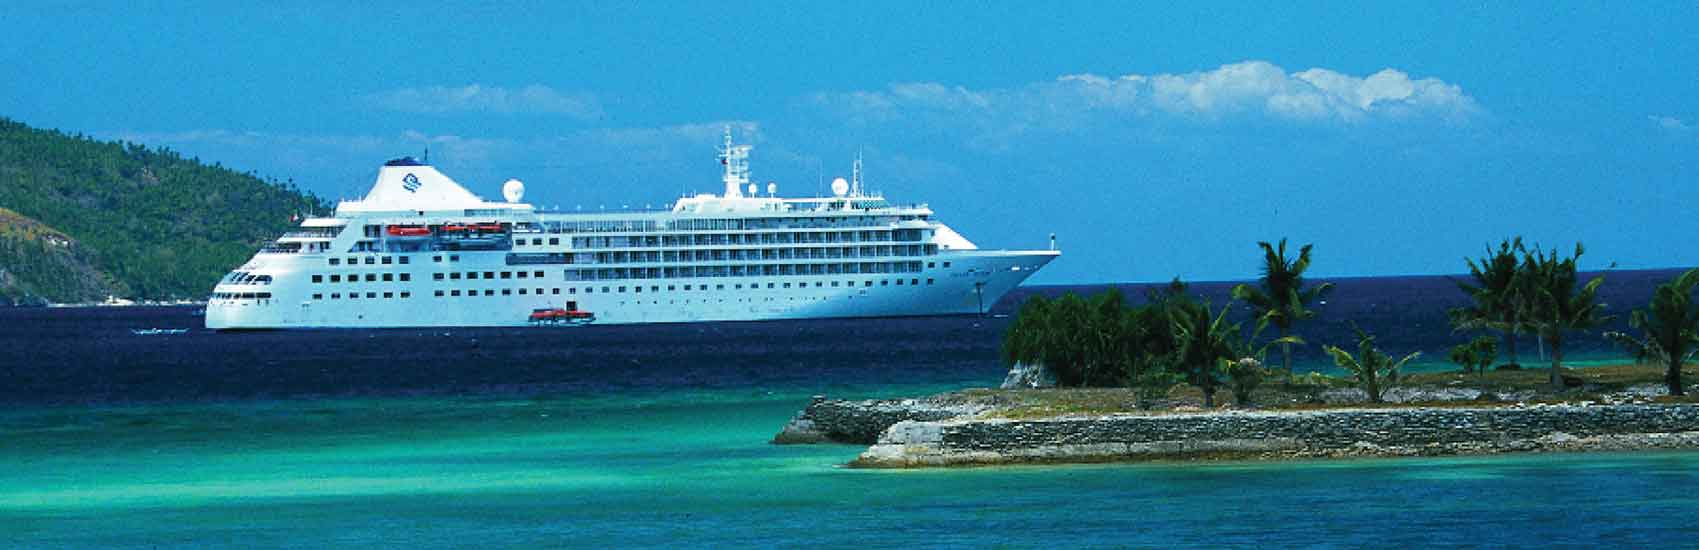 Discover the Beauty of The America's with Silversea 0